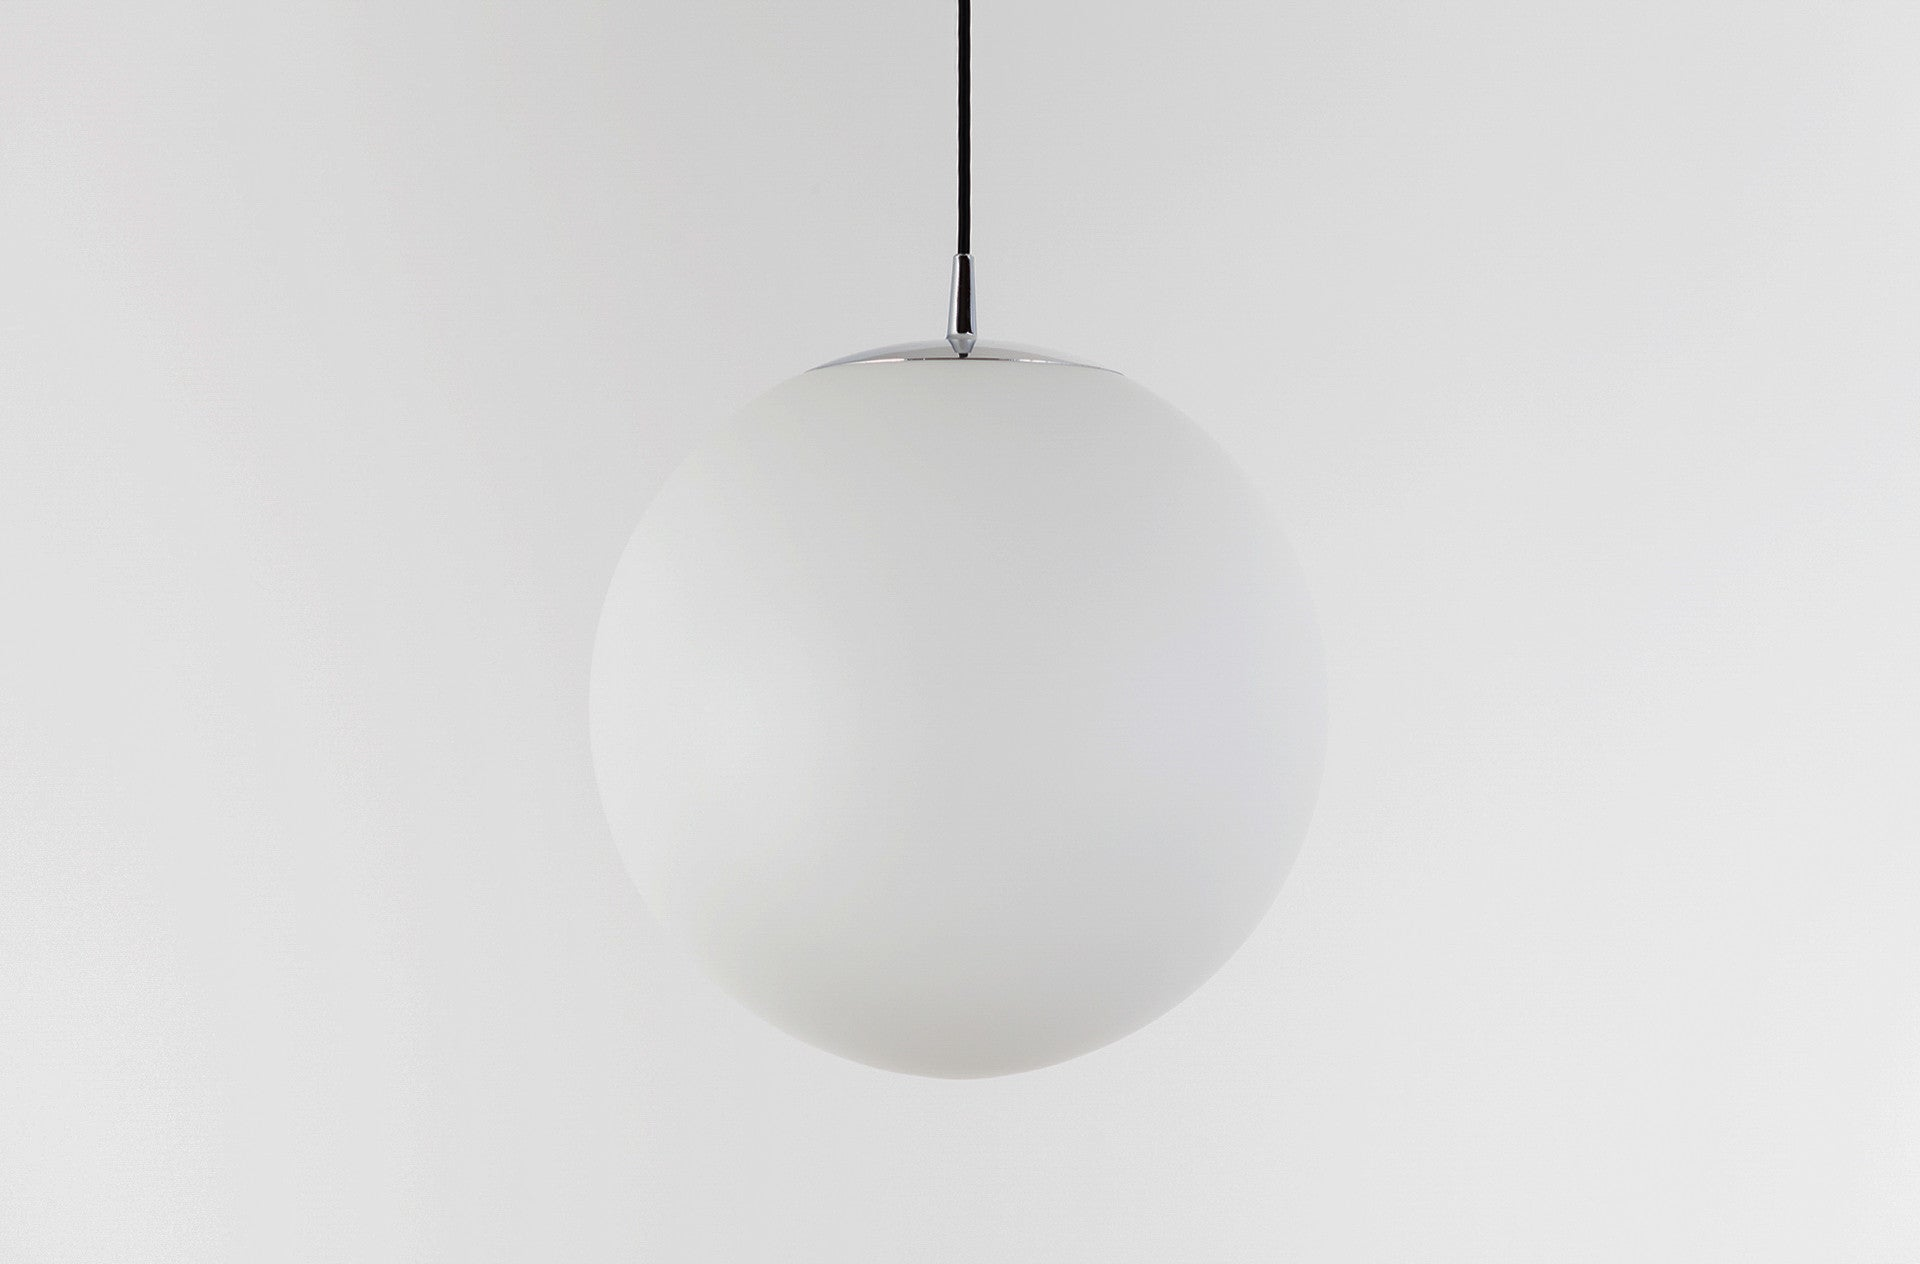 XL Opaque Globe by Peill & Putzler